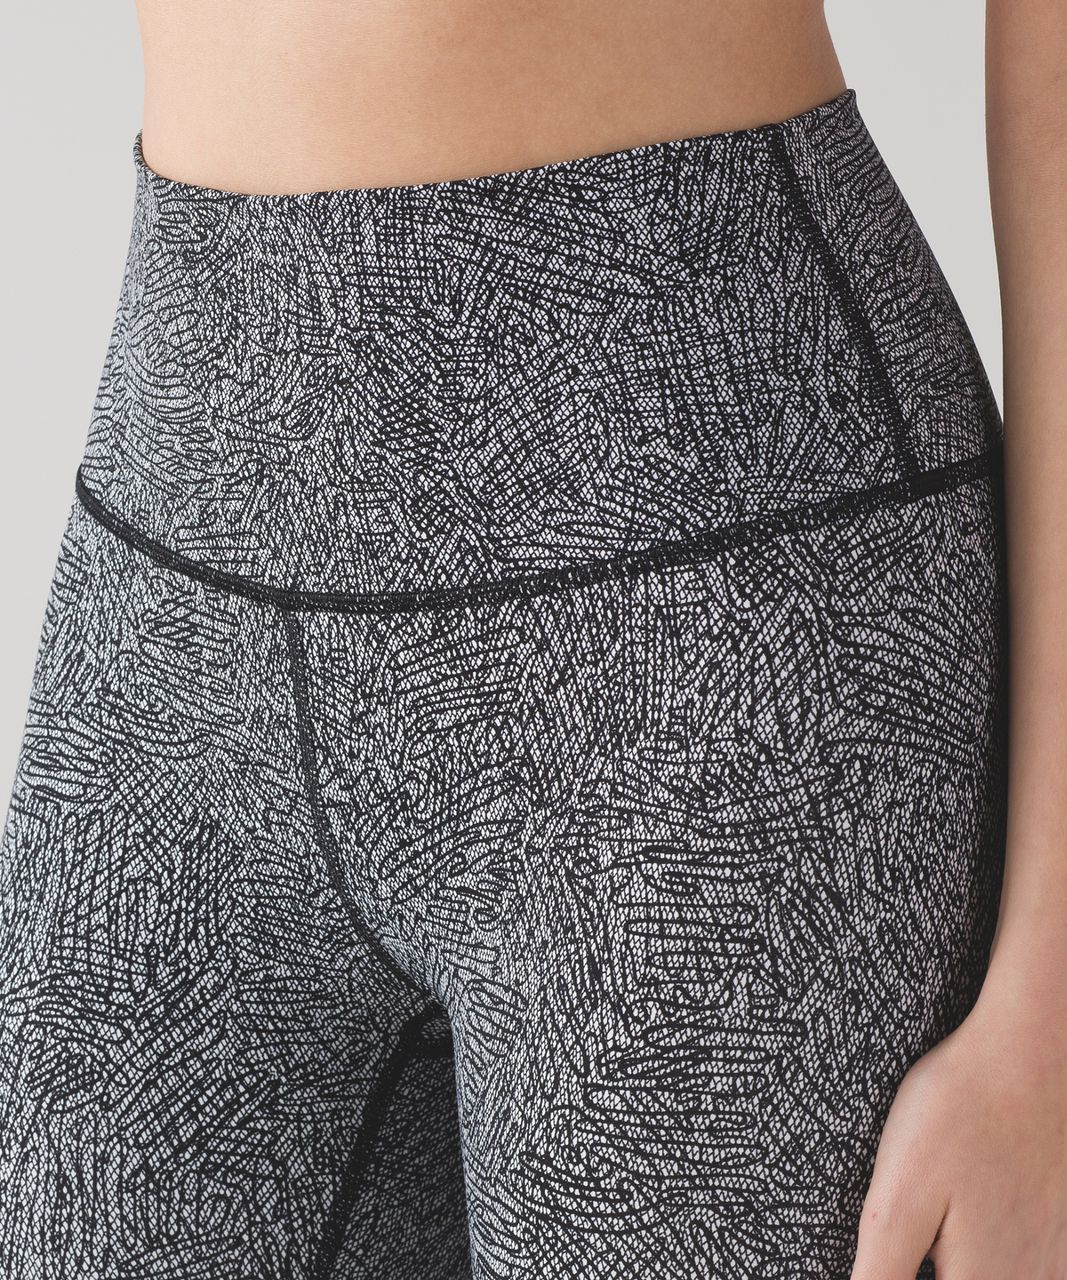 Lululemon High Times Pant - Line Up White Black